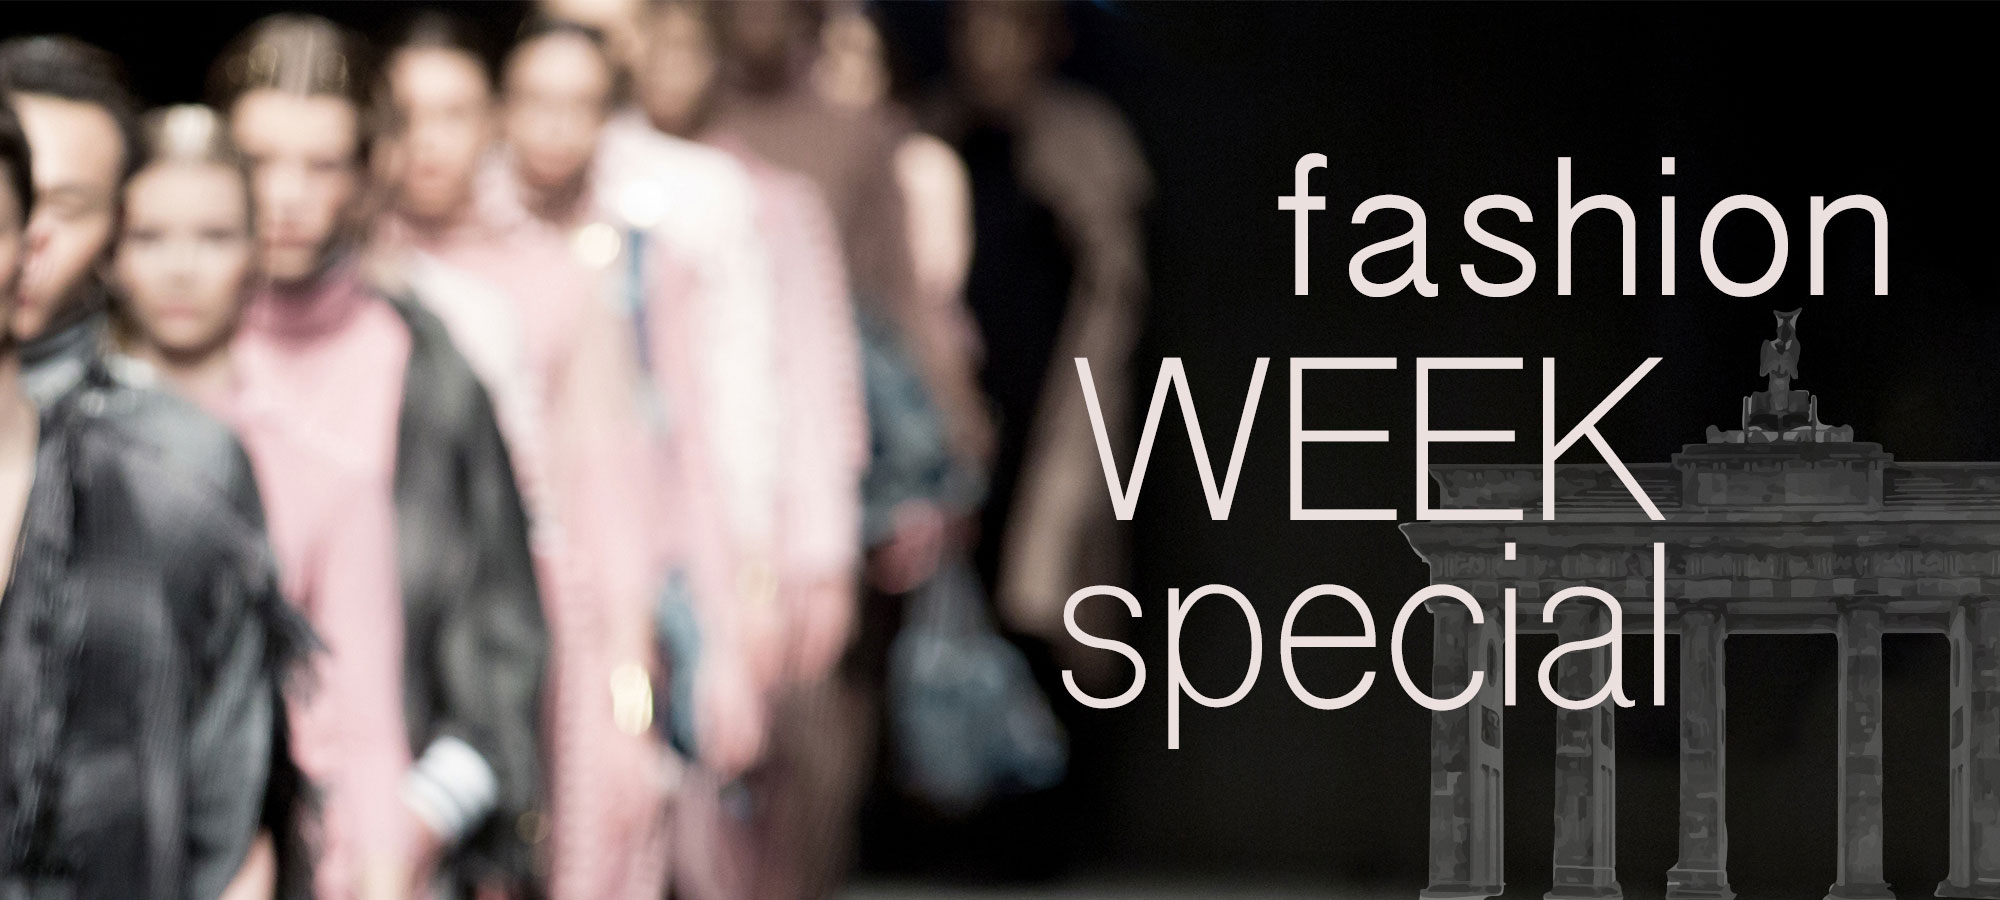 Fashion Week Special